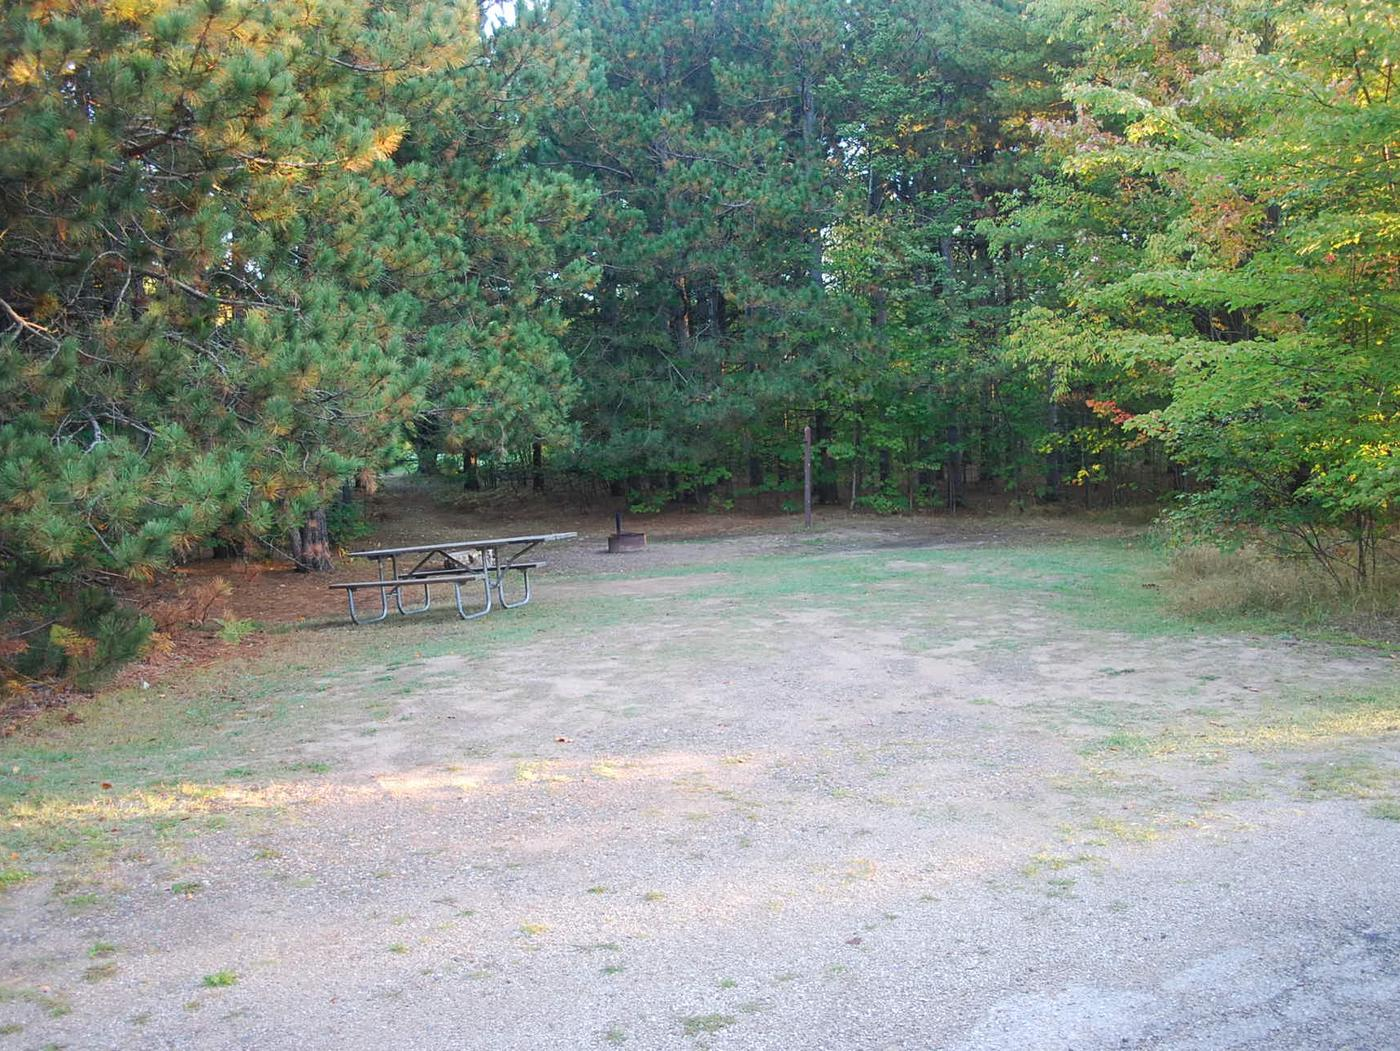 Bay Furnace Campground site #34; heavily treed site with picnic table and fire pit.